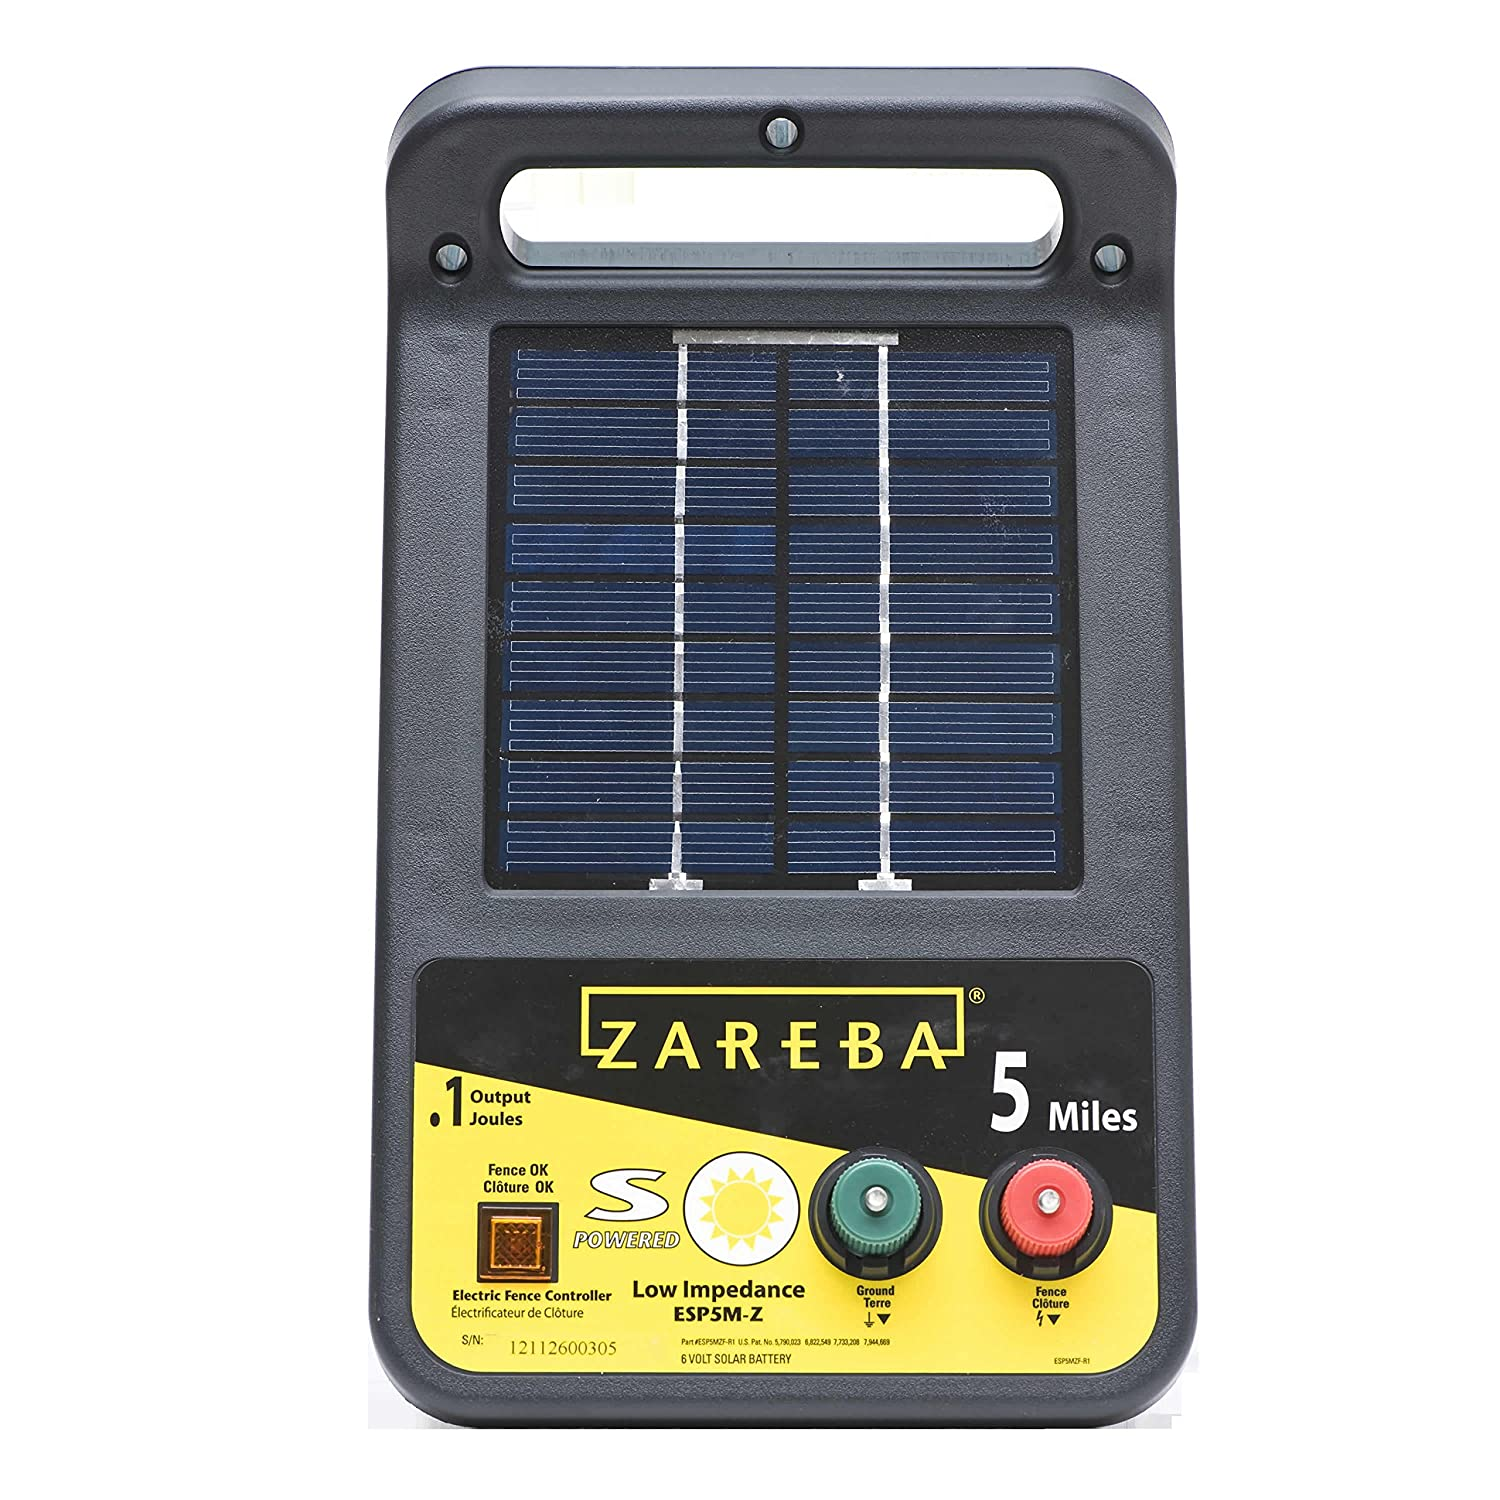 91cfaHQBf4L._SL1500_ amazon com zareba esp5m z 5 mile solar low impedance charger Electric Fence Circuit Diagram at mifinder.co